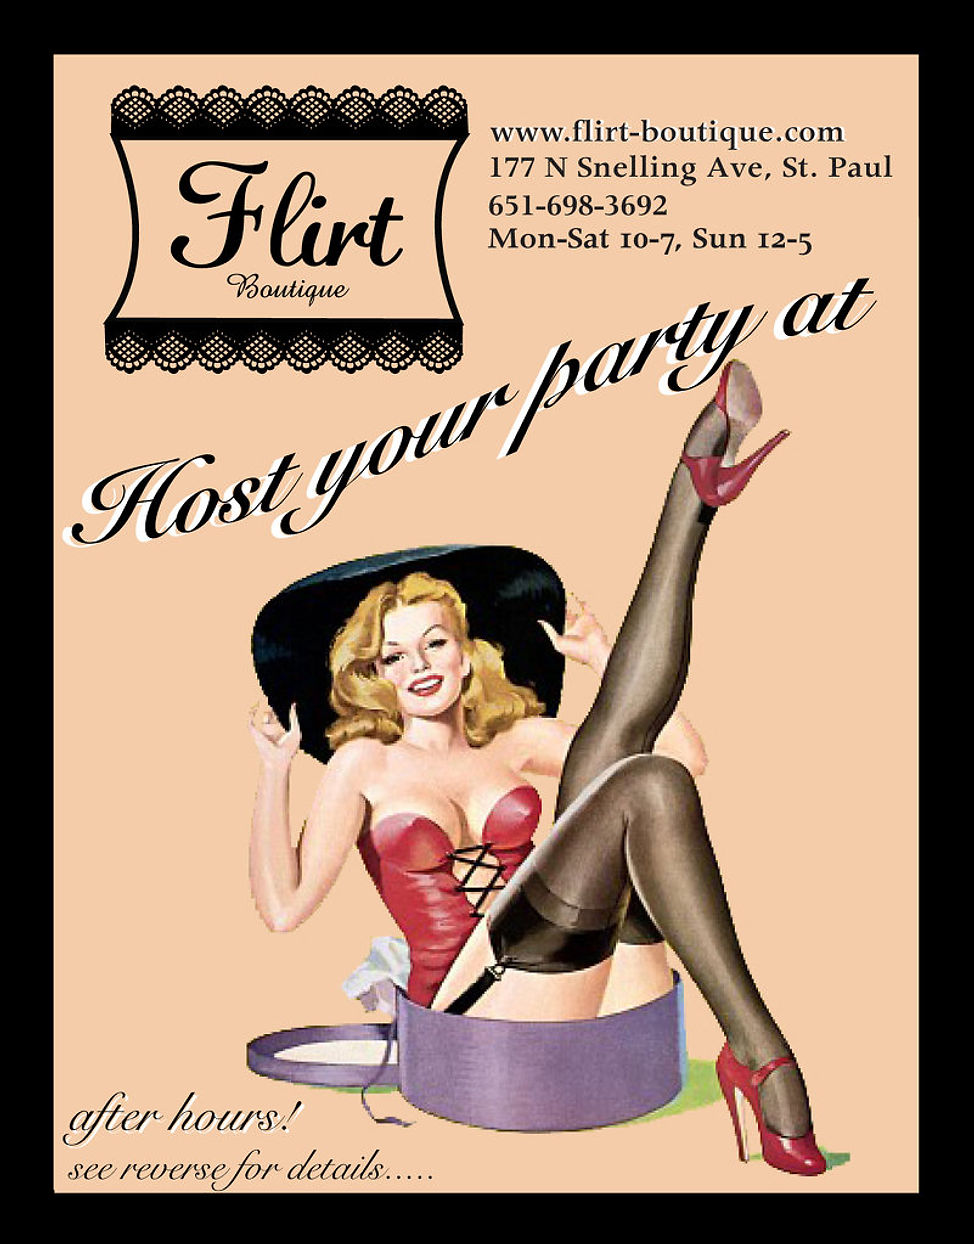 Host Your Party At Flirt